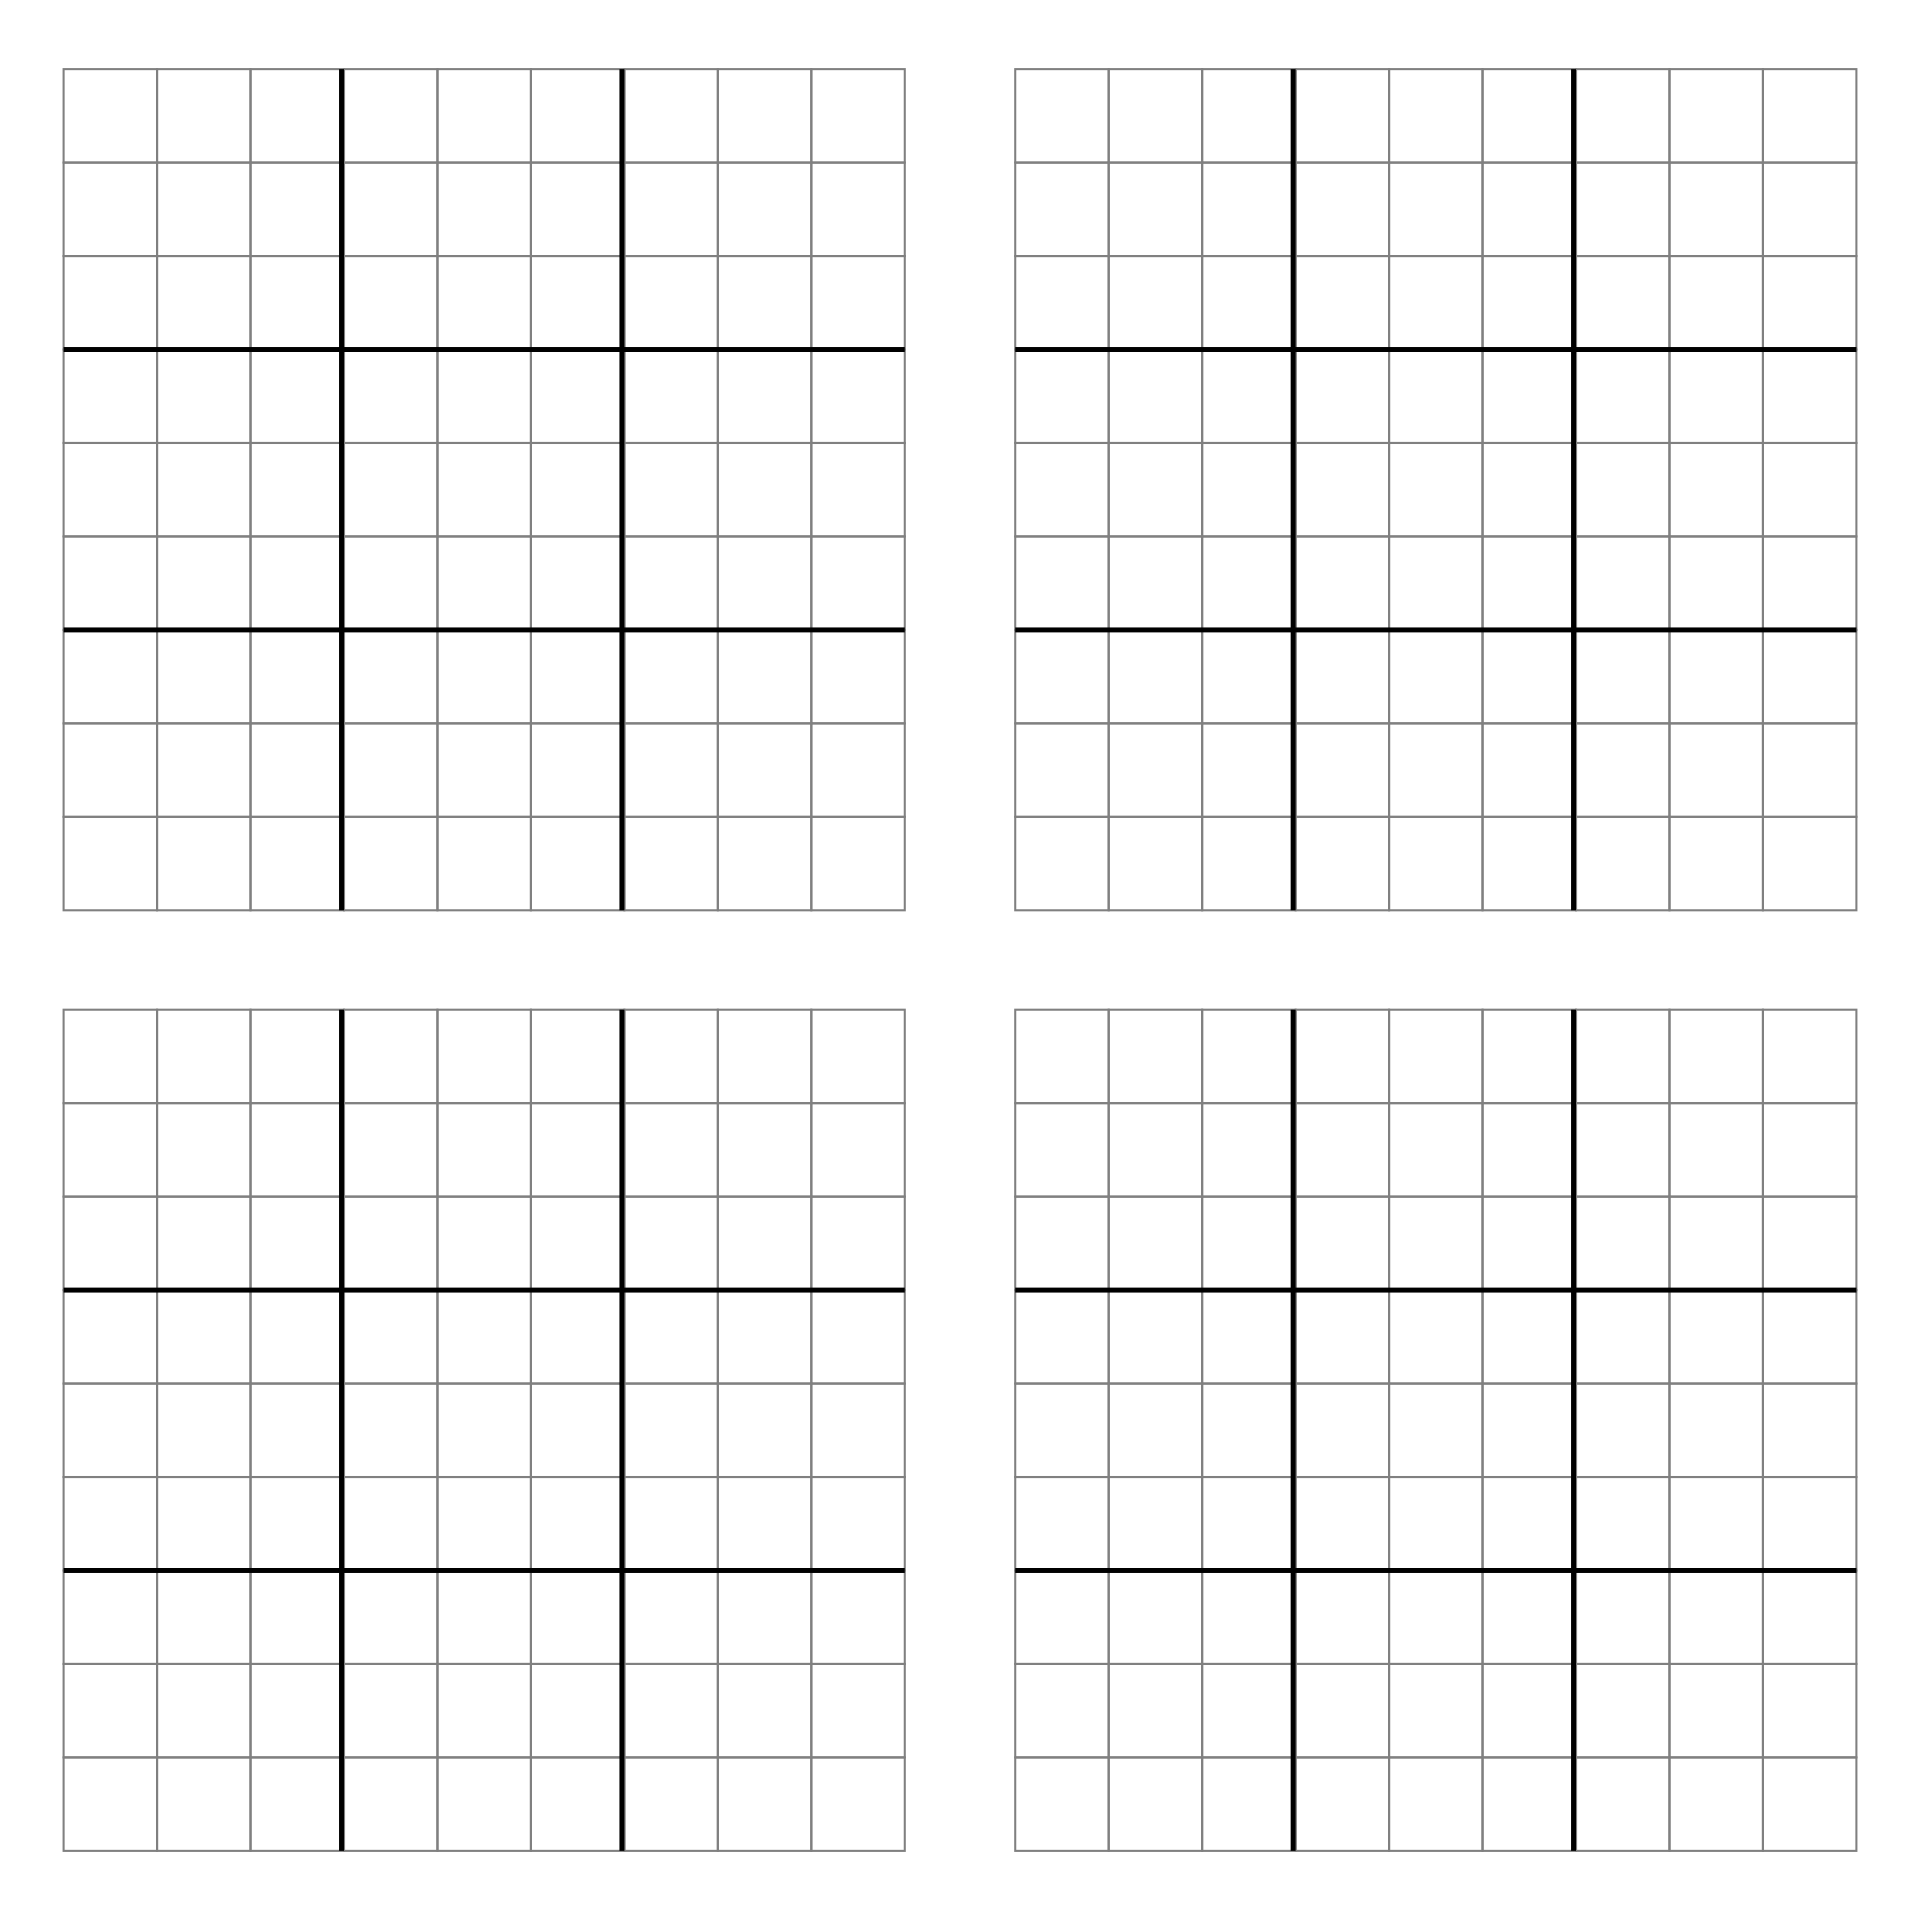 4 Images of Printable Blank Sudoku Grid 2 Per Page